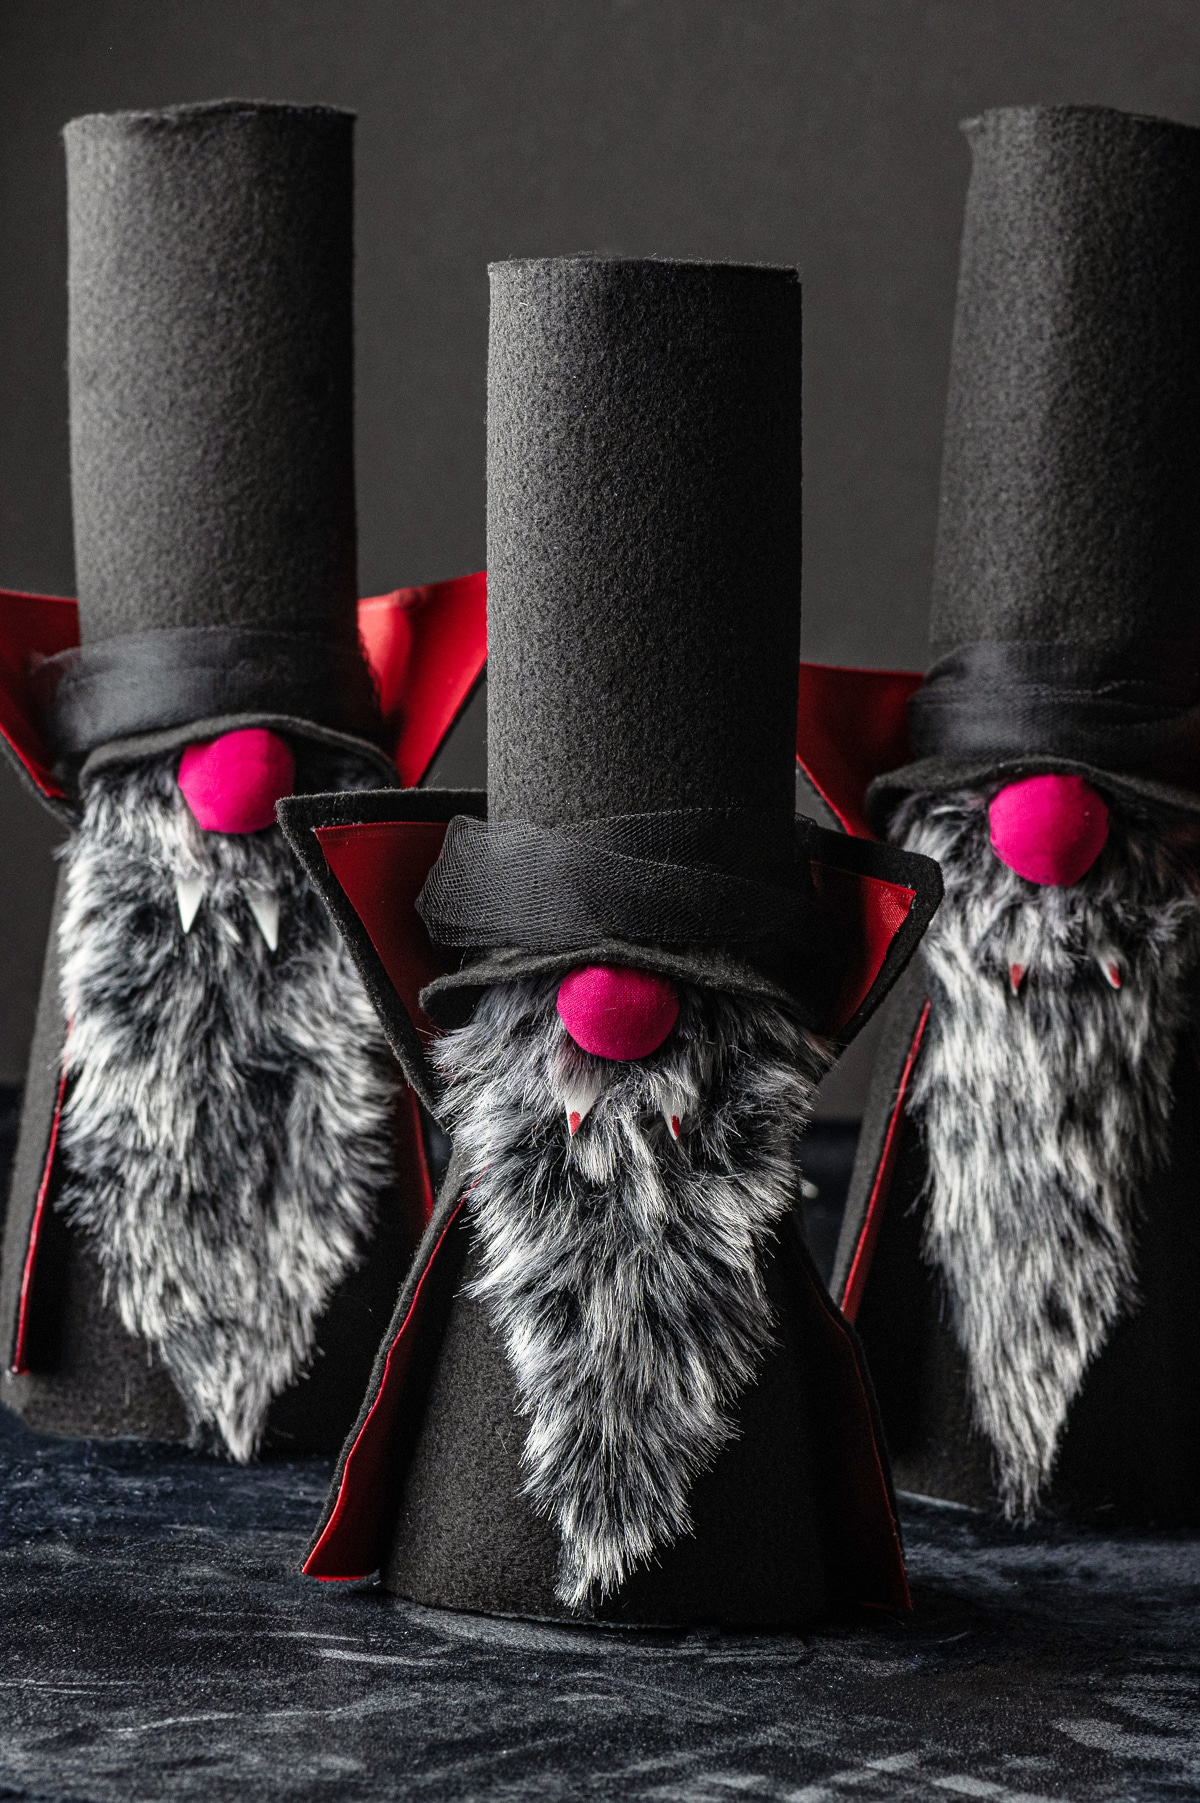 Three felt halloween gnome vampires with tall black hats, and red noses, grey beards and red fangs against a dark black background